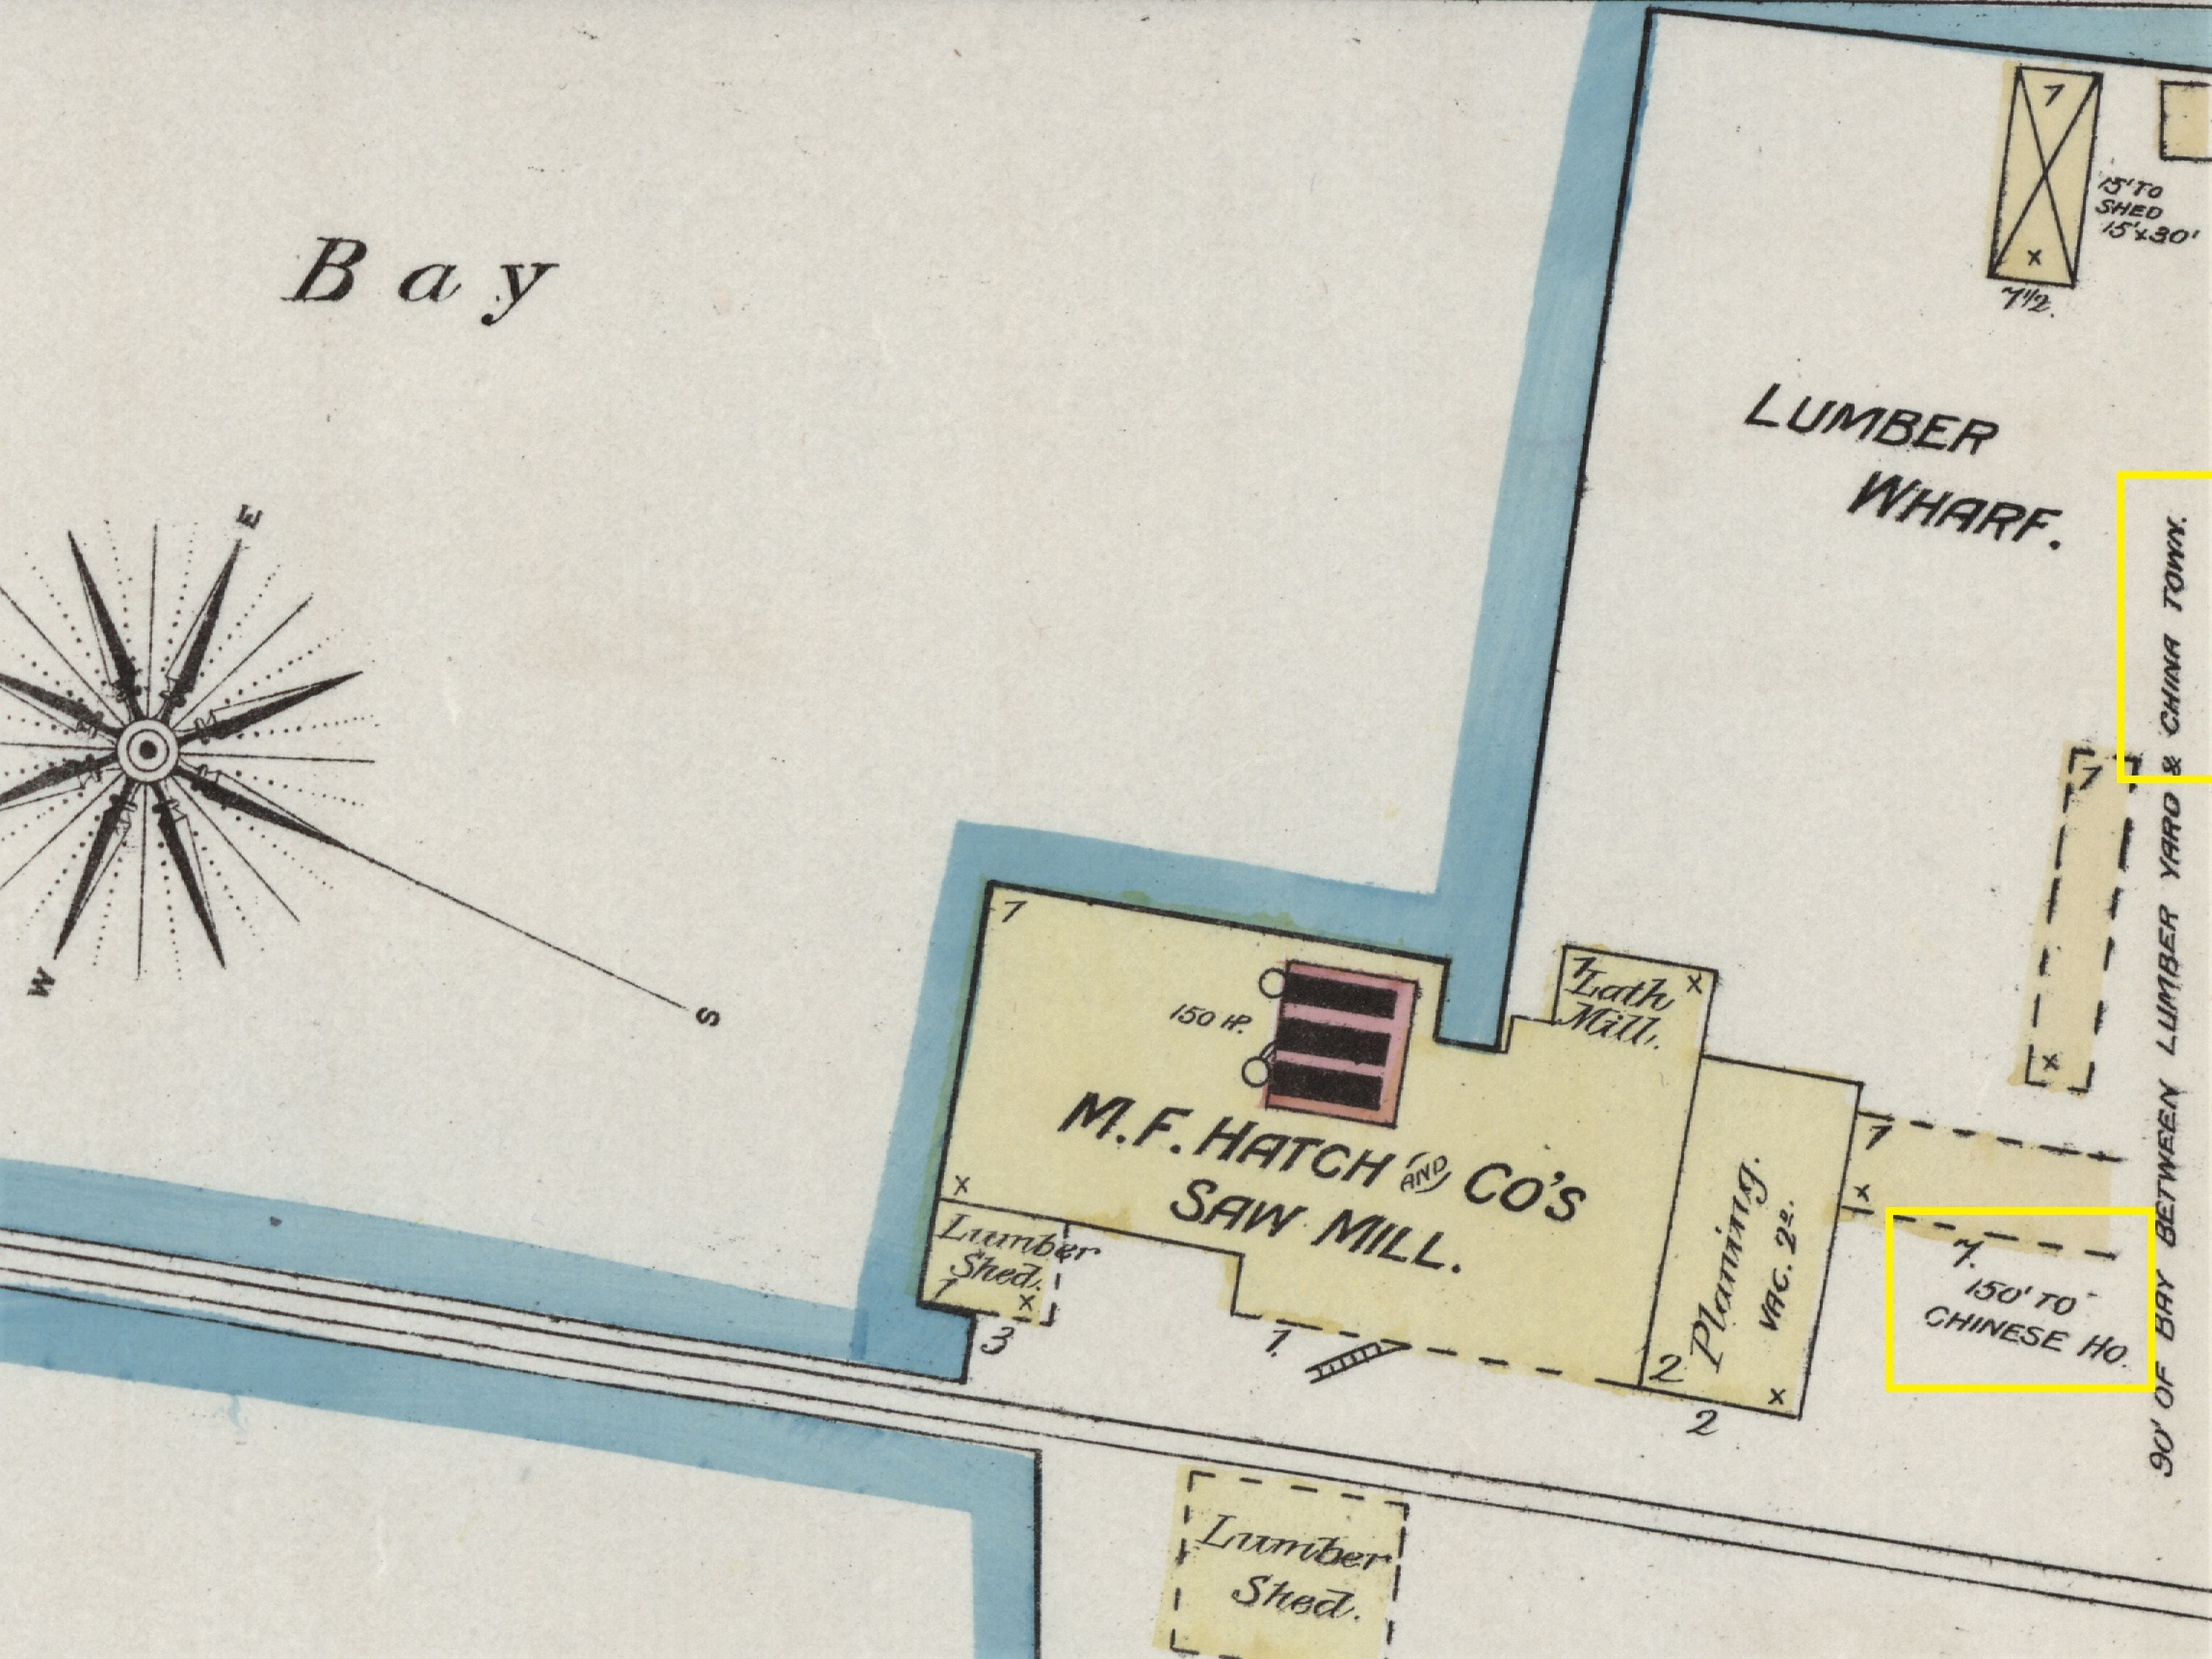 Chinatown & Hatch Mill on 1885 Sanborn Map